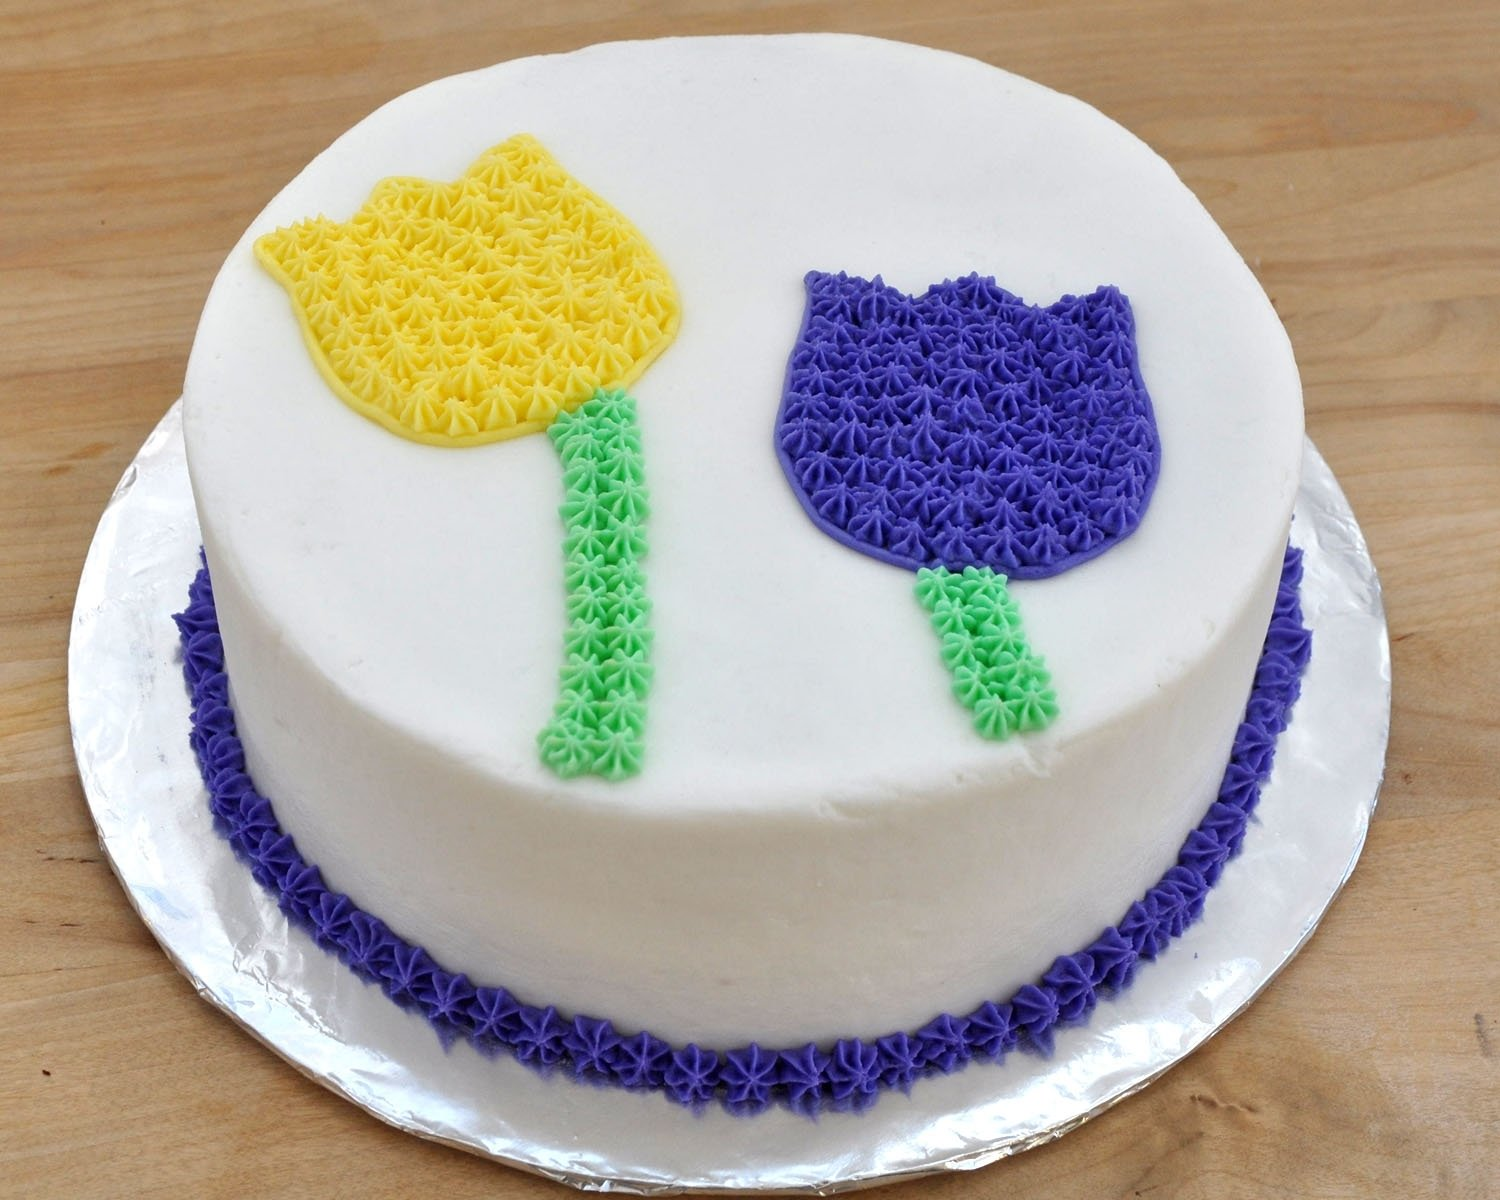 10 Best Simple Birthday Cake Decorating Ideas beki cooks cake blog cake decorating 101 easy birthday cake 5 2020